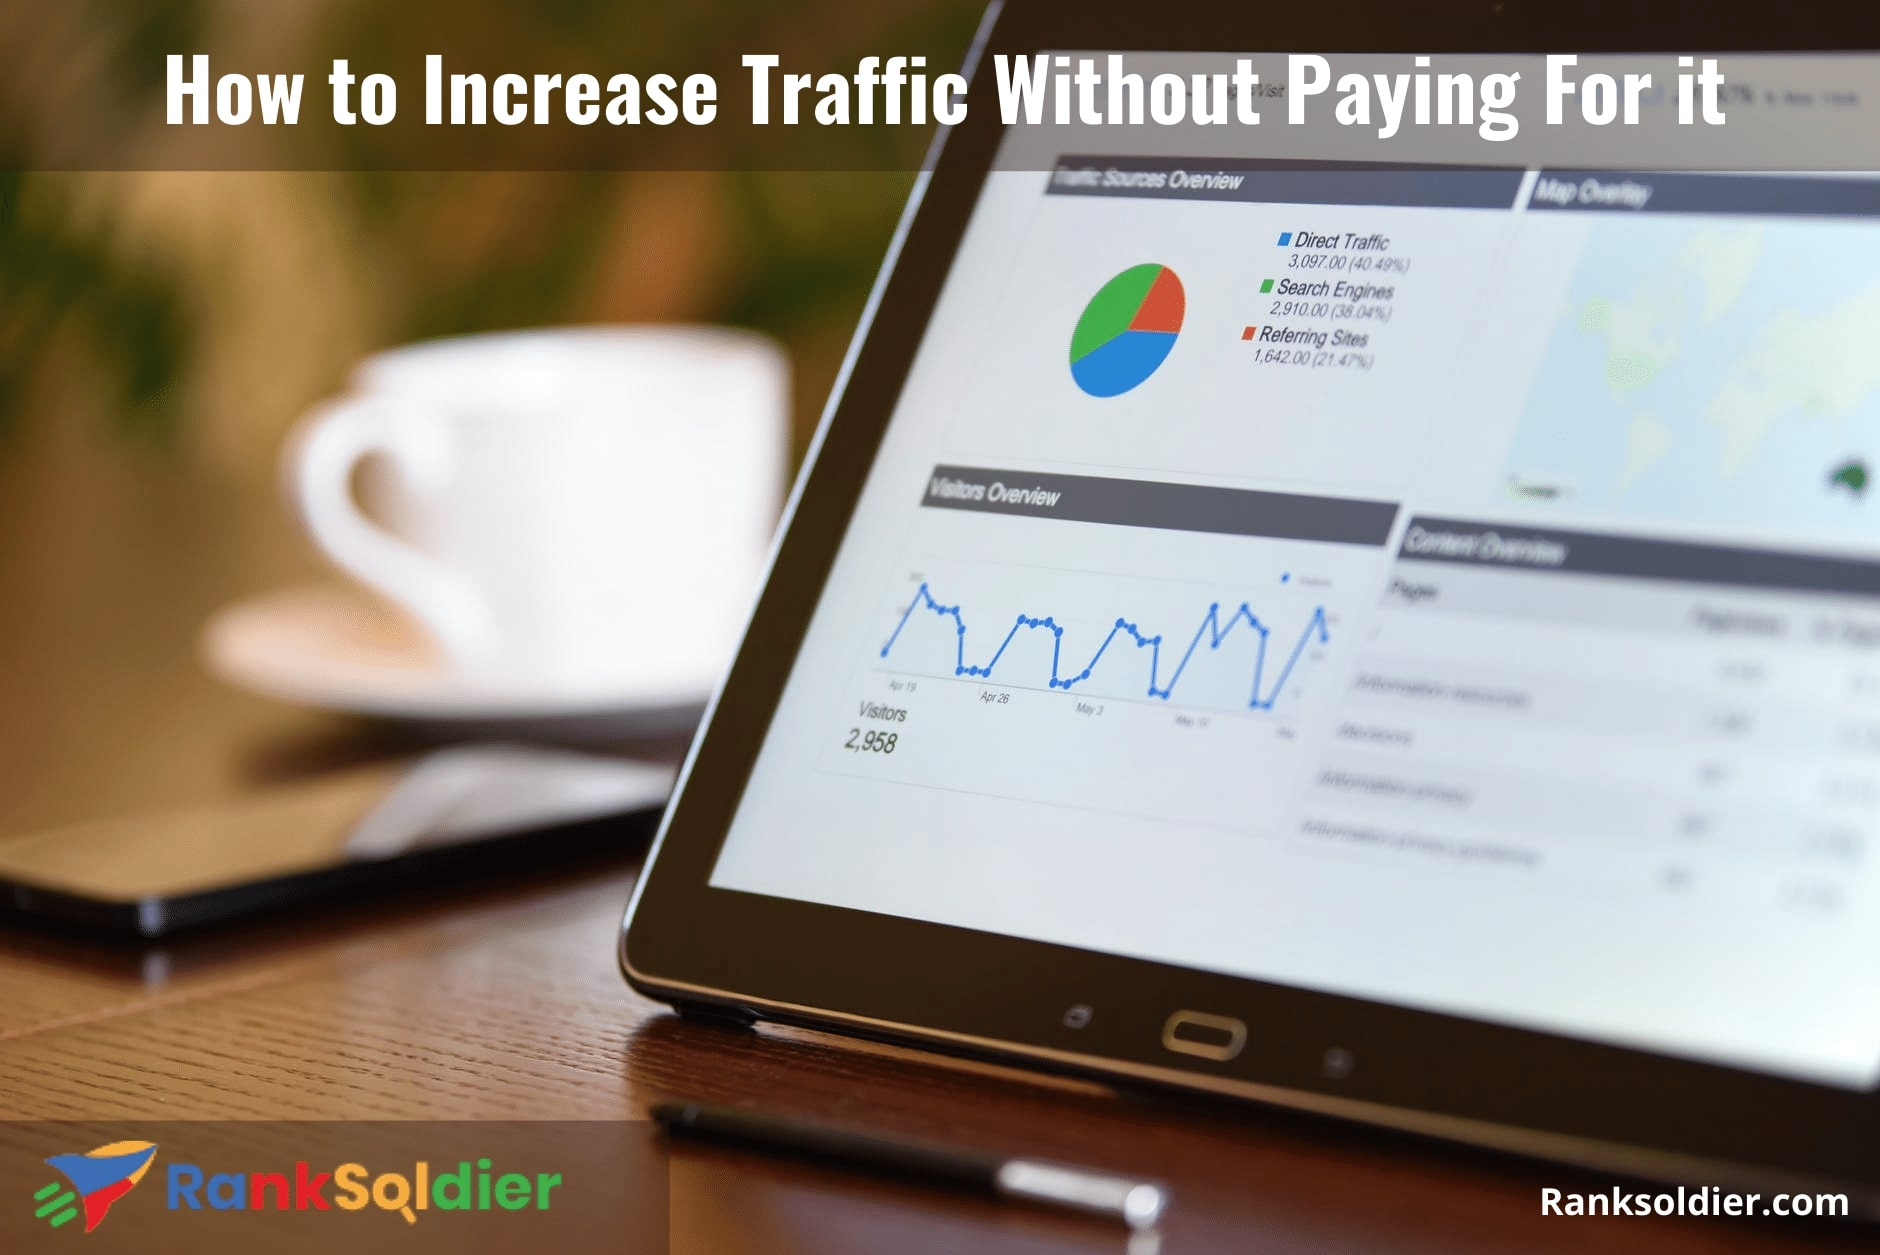 How to Increase Traffic Without Paying For it